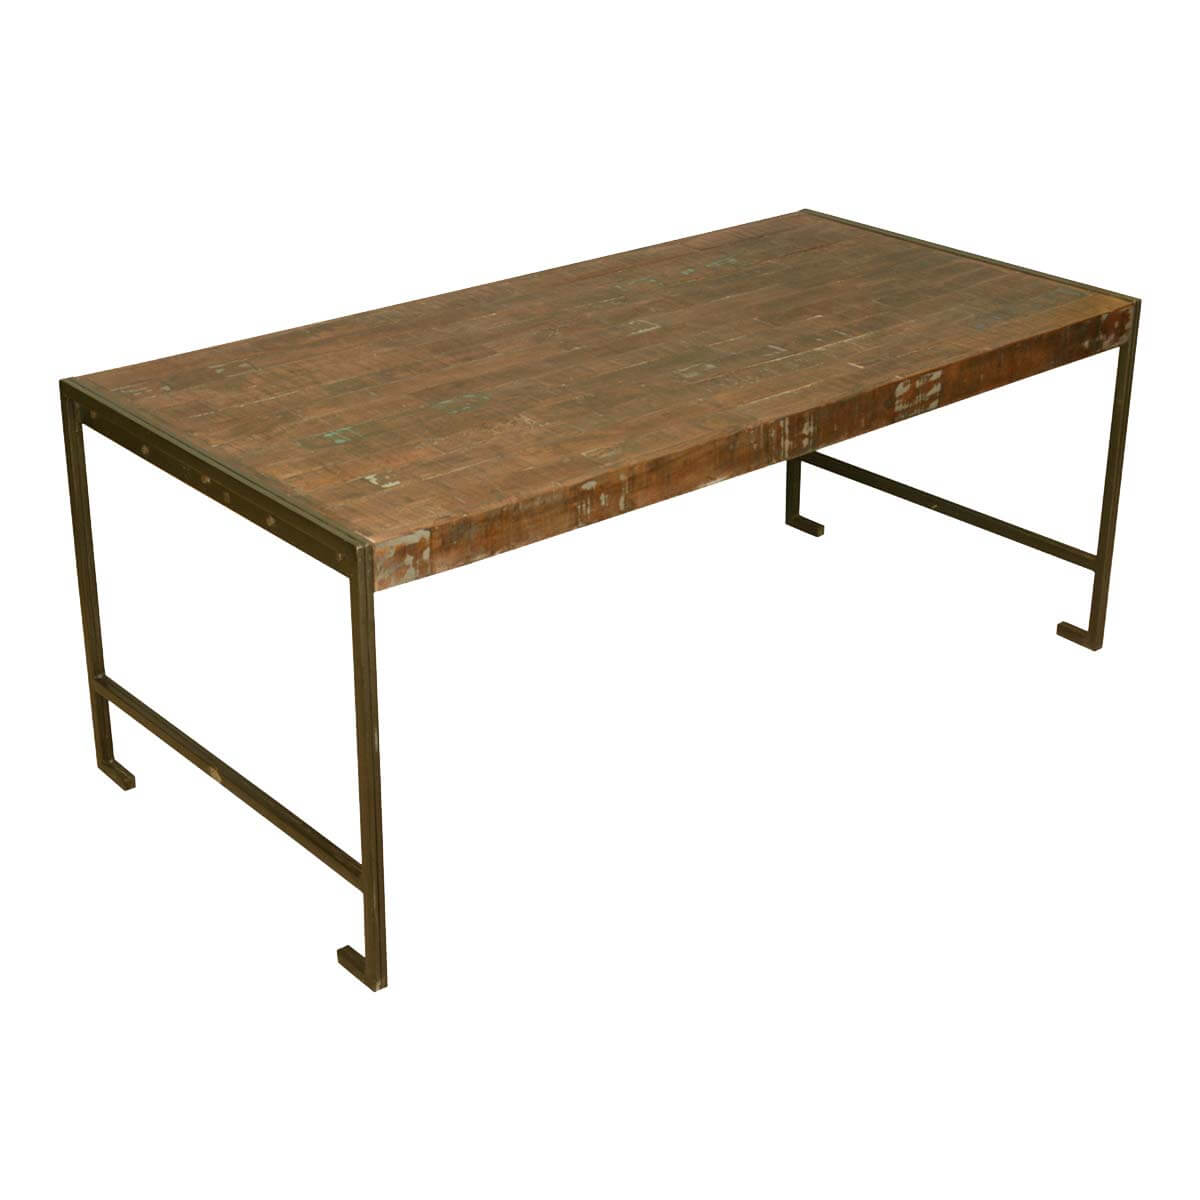 Philadelphia modern rustic reclaimed wood industrial for Rustic dining table